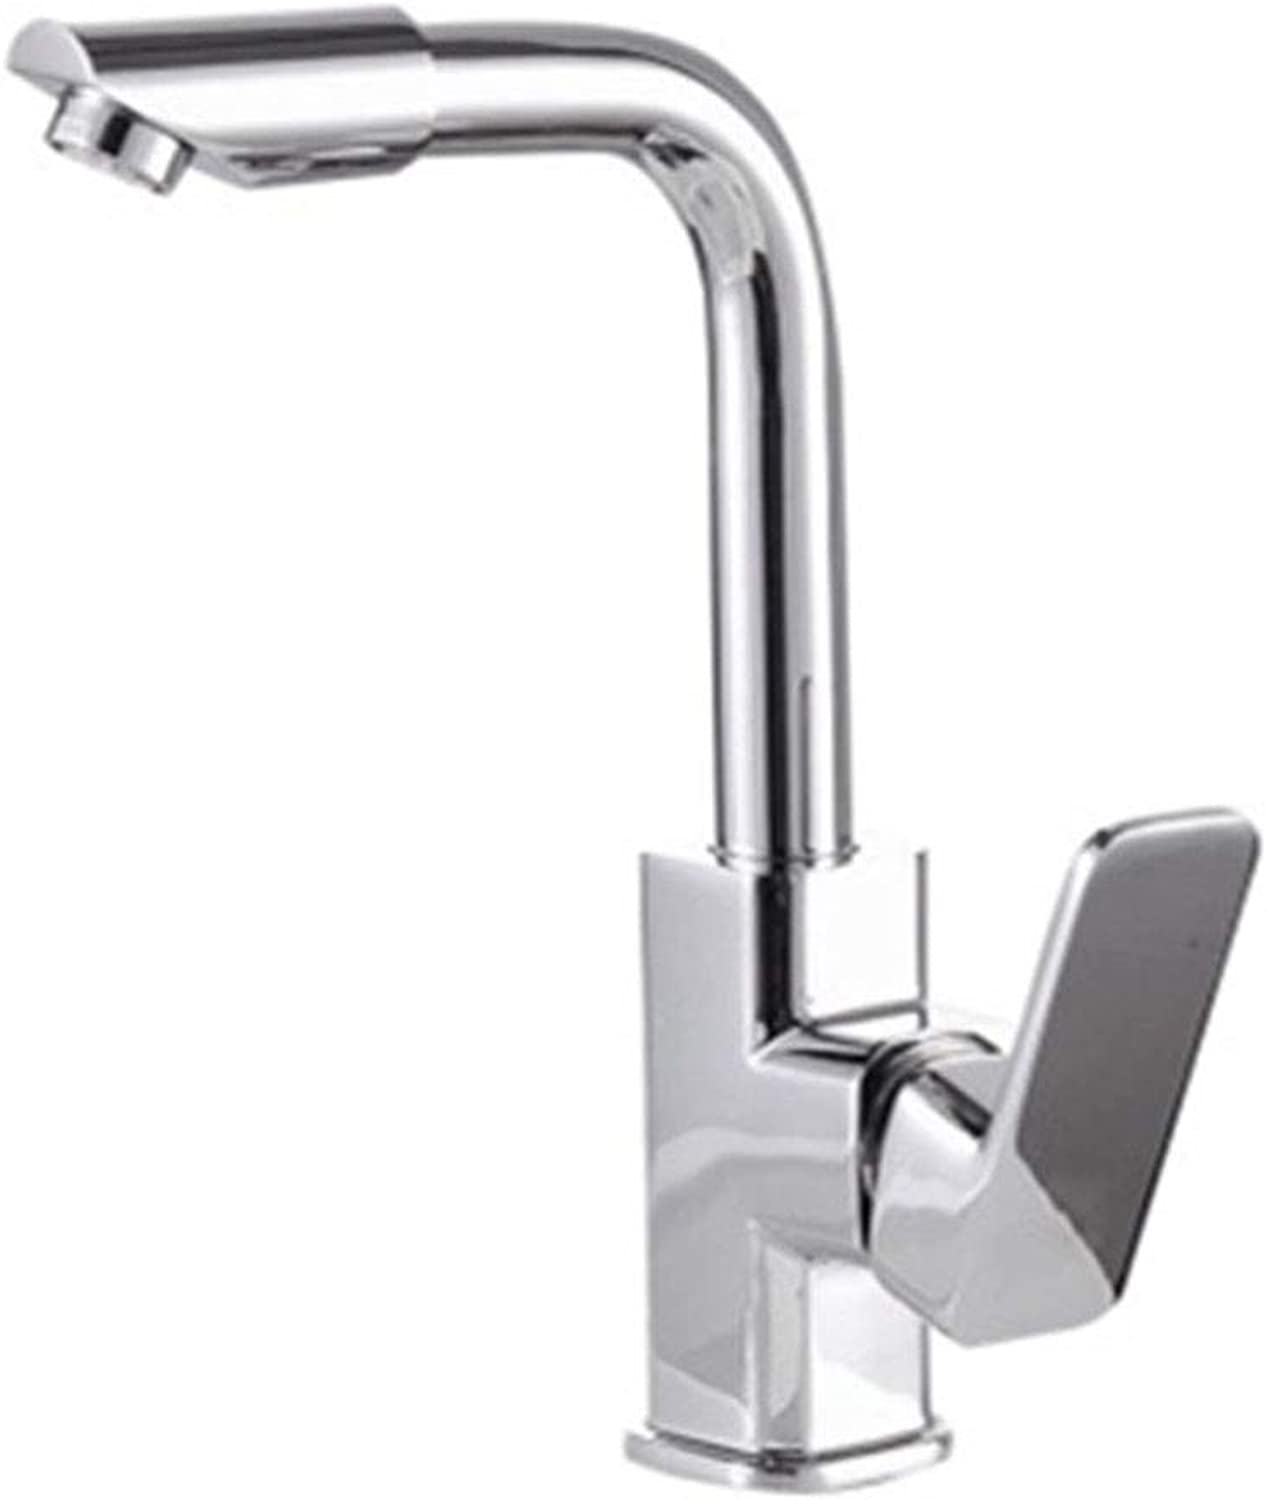 304 Stainless Steel Faucet hot and Cold Sink Sink Faucet Above Counter Basin wash Basin Kitchen Sink Sink Dedicated